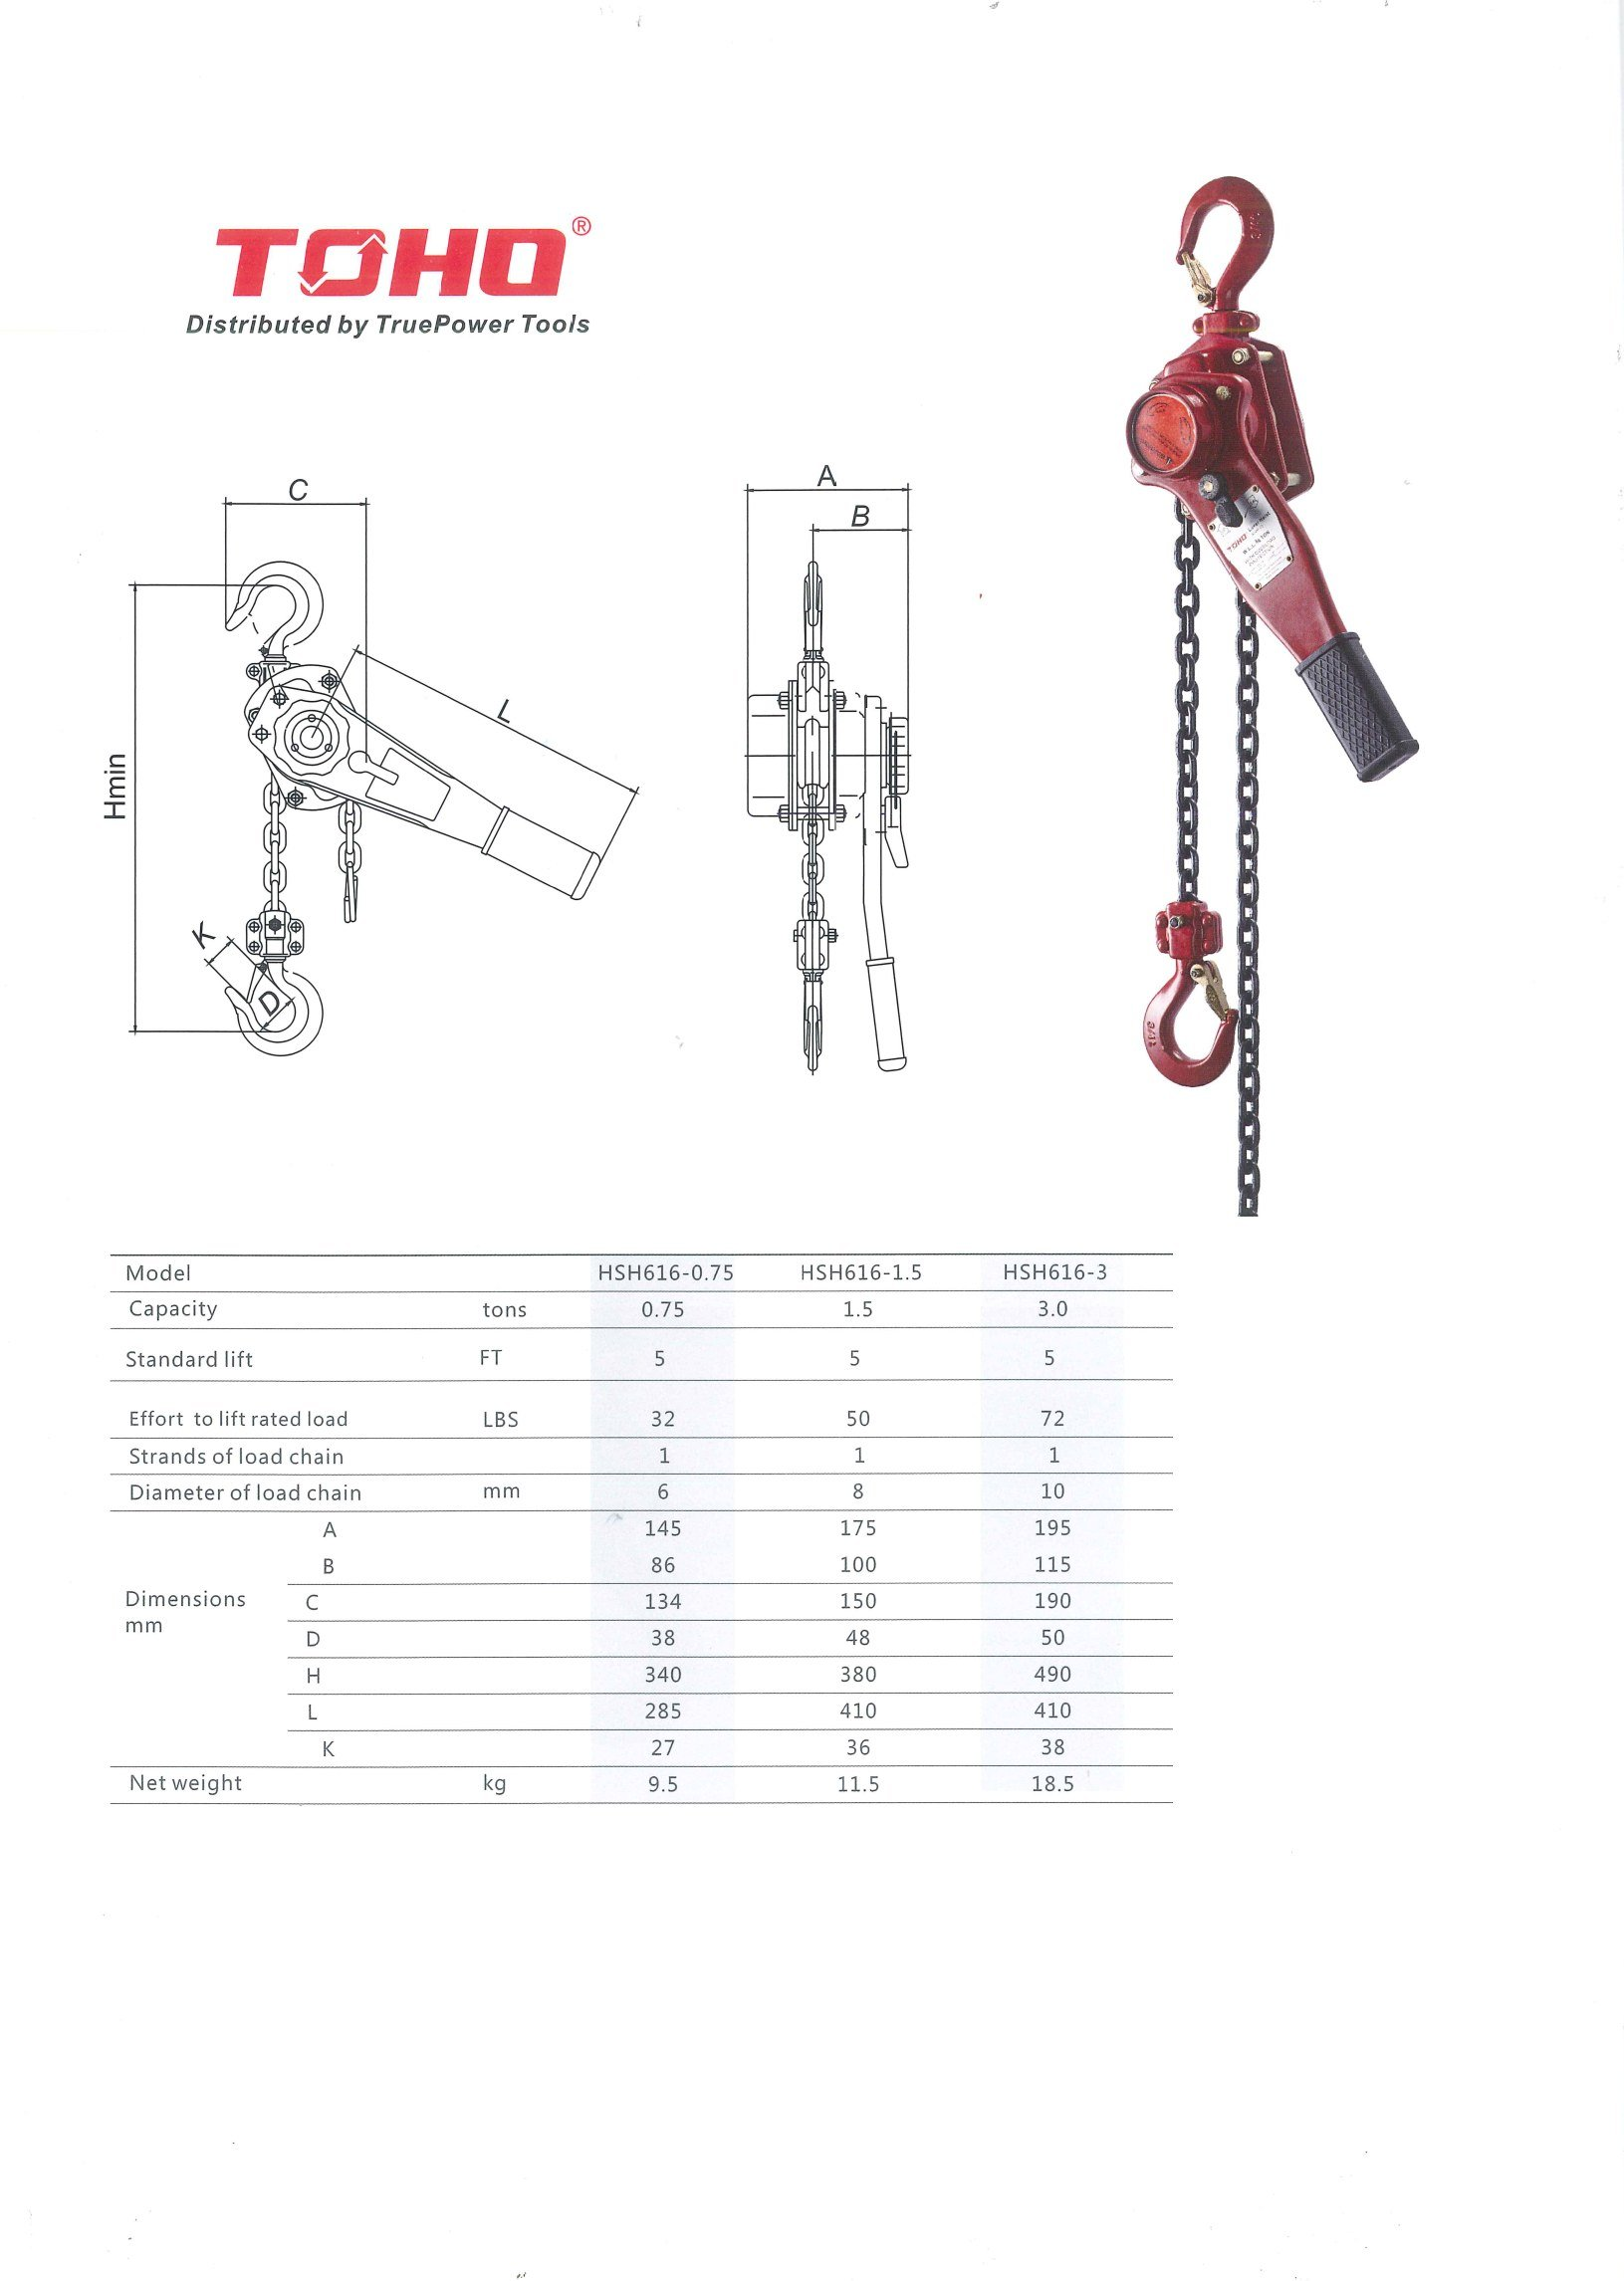 TOHO HSH-616 OP Lever Block/Ratchet Puller Hoist with Overload Protection  (1 5 Ton, 10 Foot Chain)